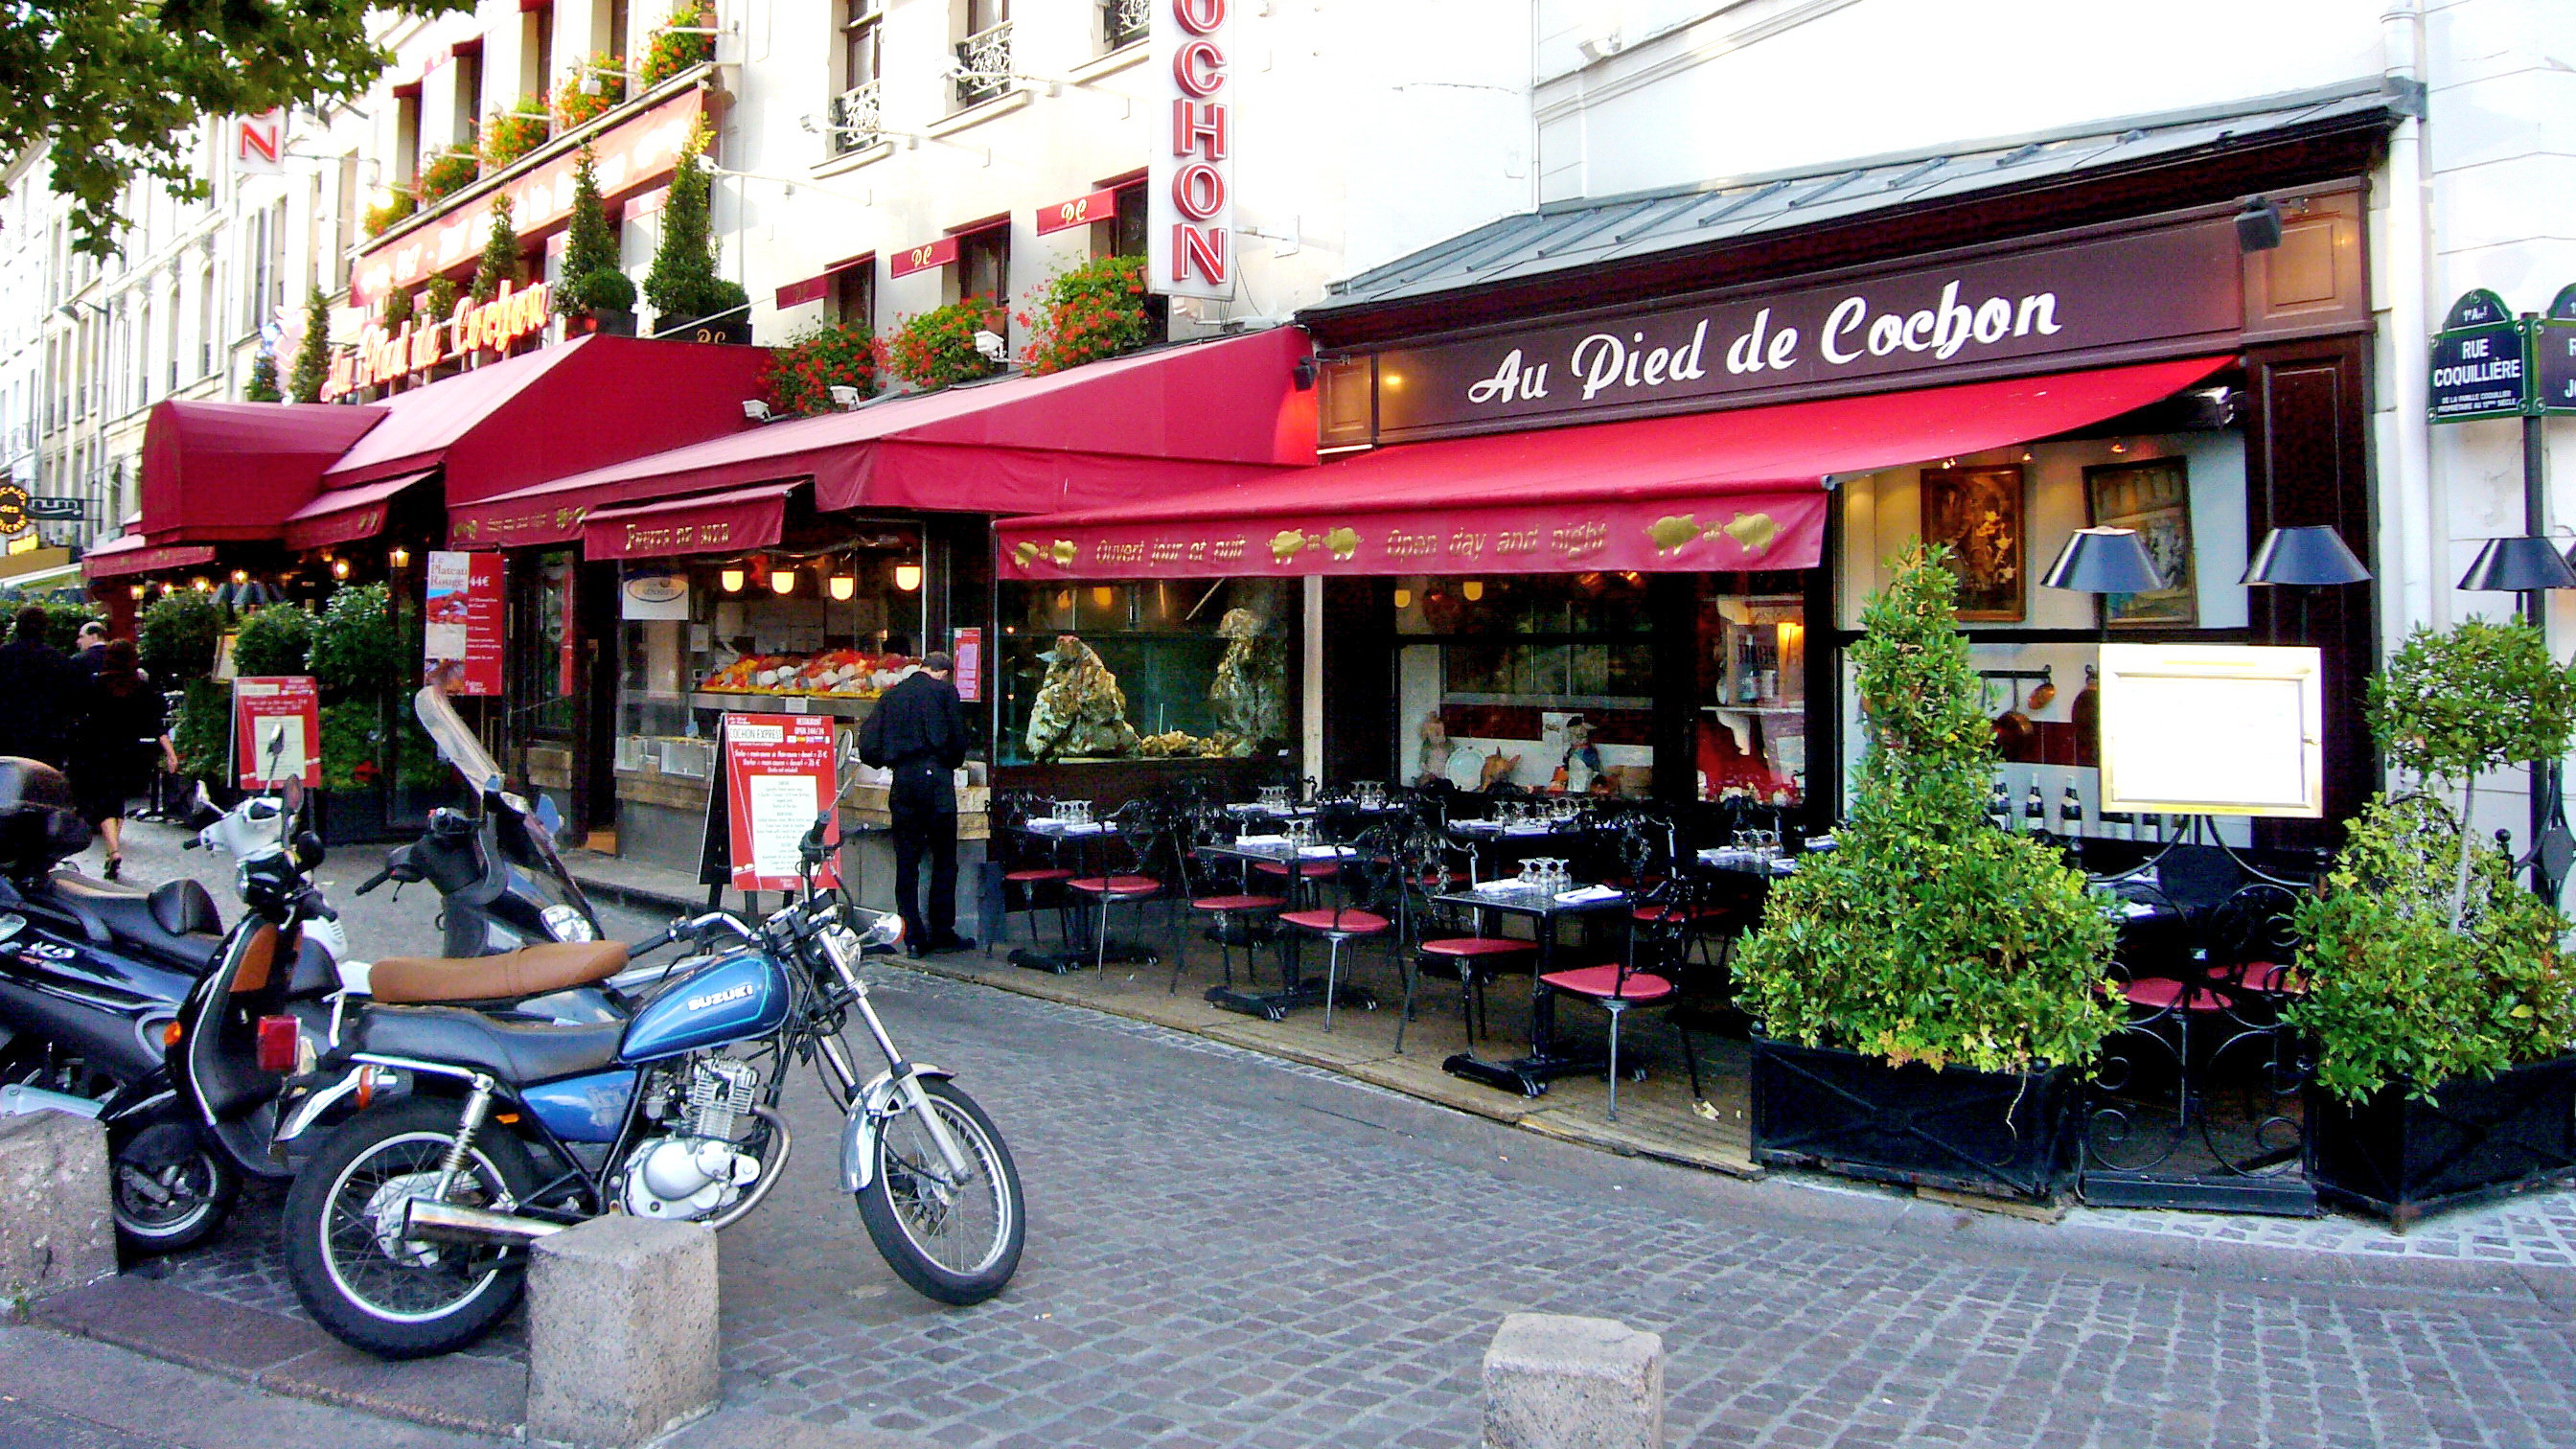 Best restaurants in paris affashionate com - Cuisiner des pieds de cochon ...